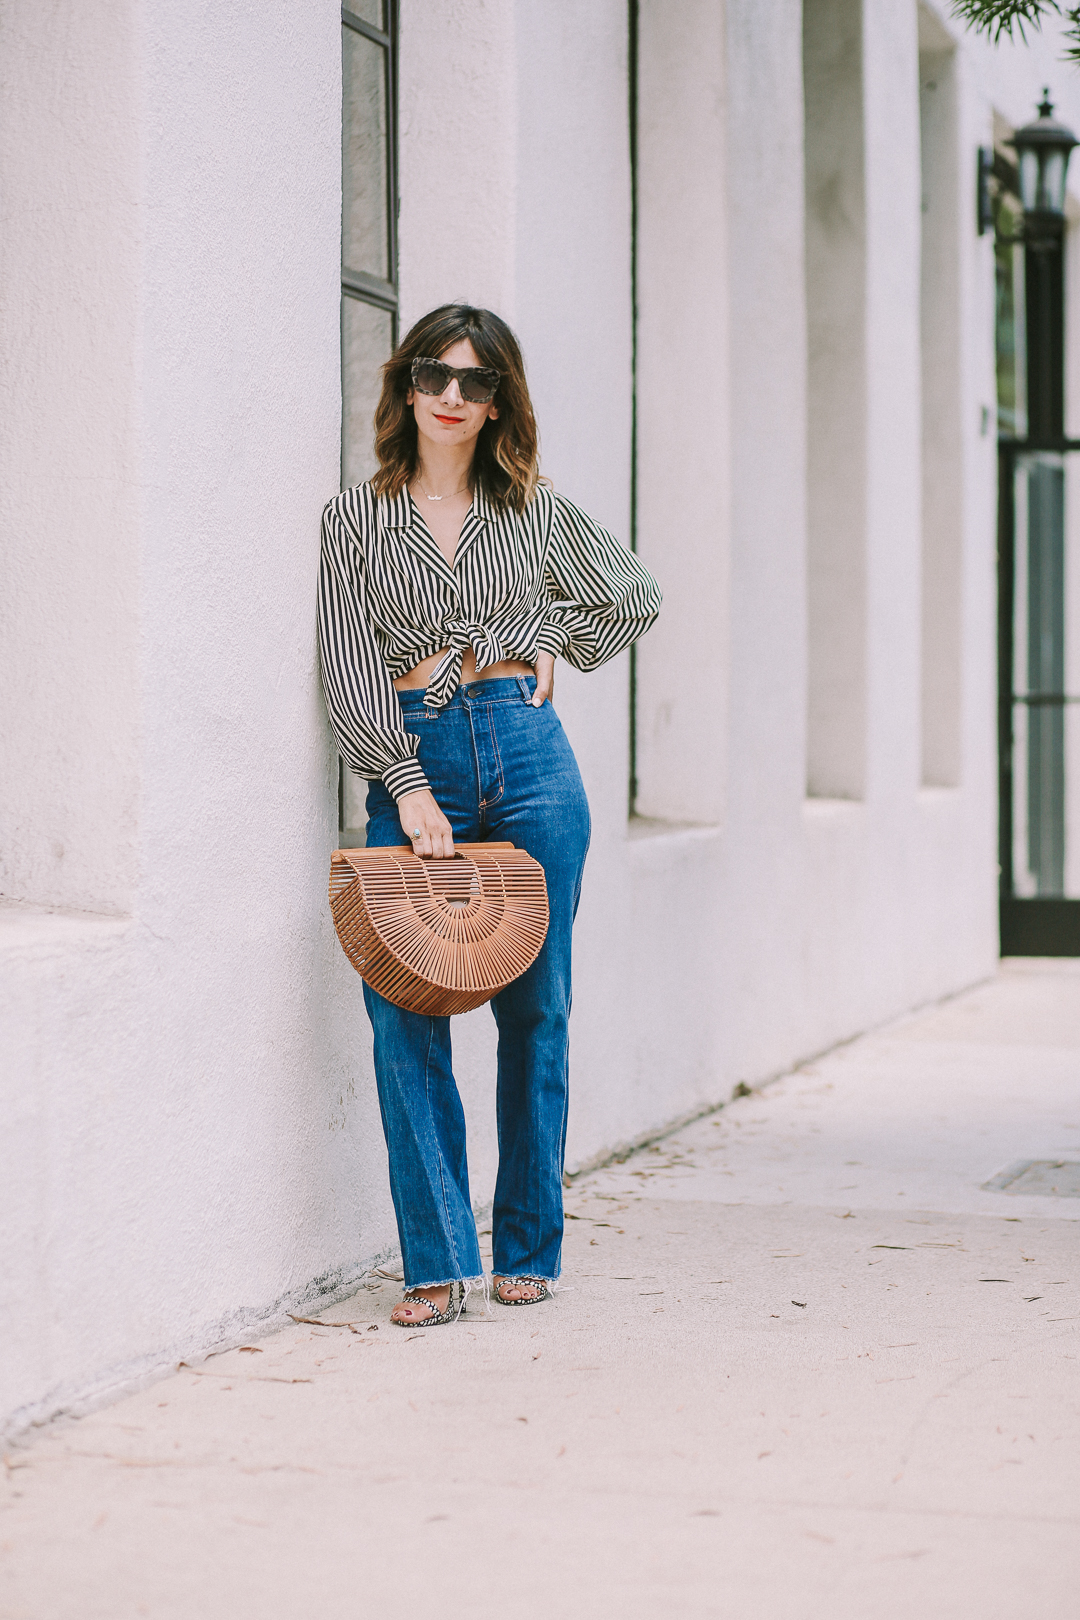 how to style high waist jeans outfit ideas